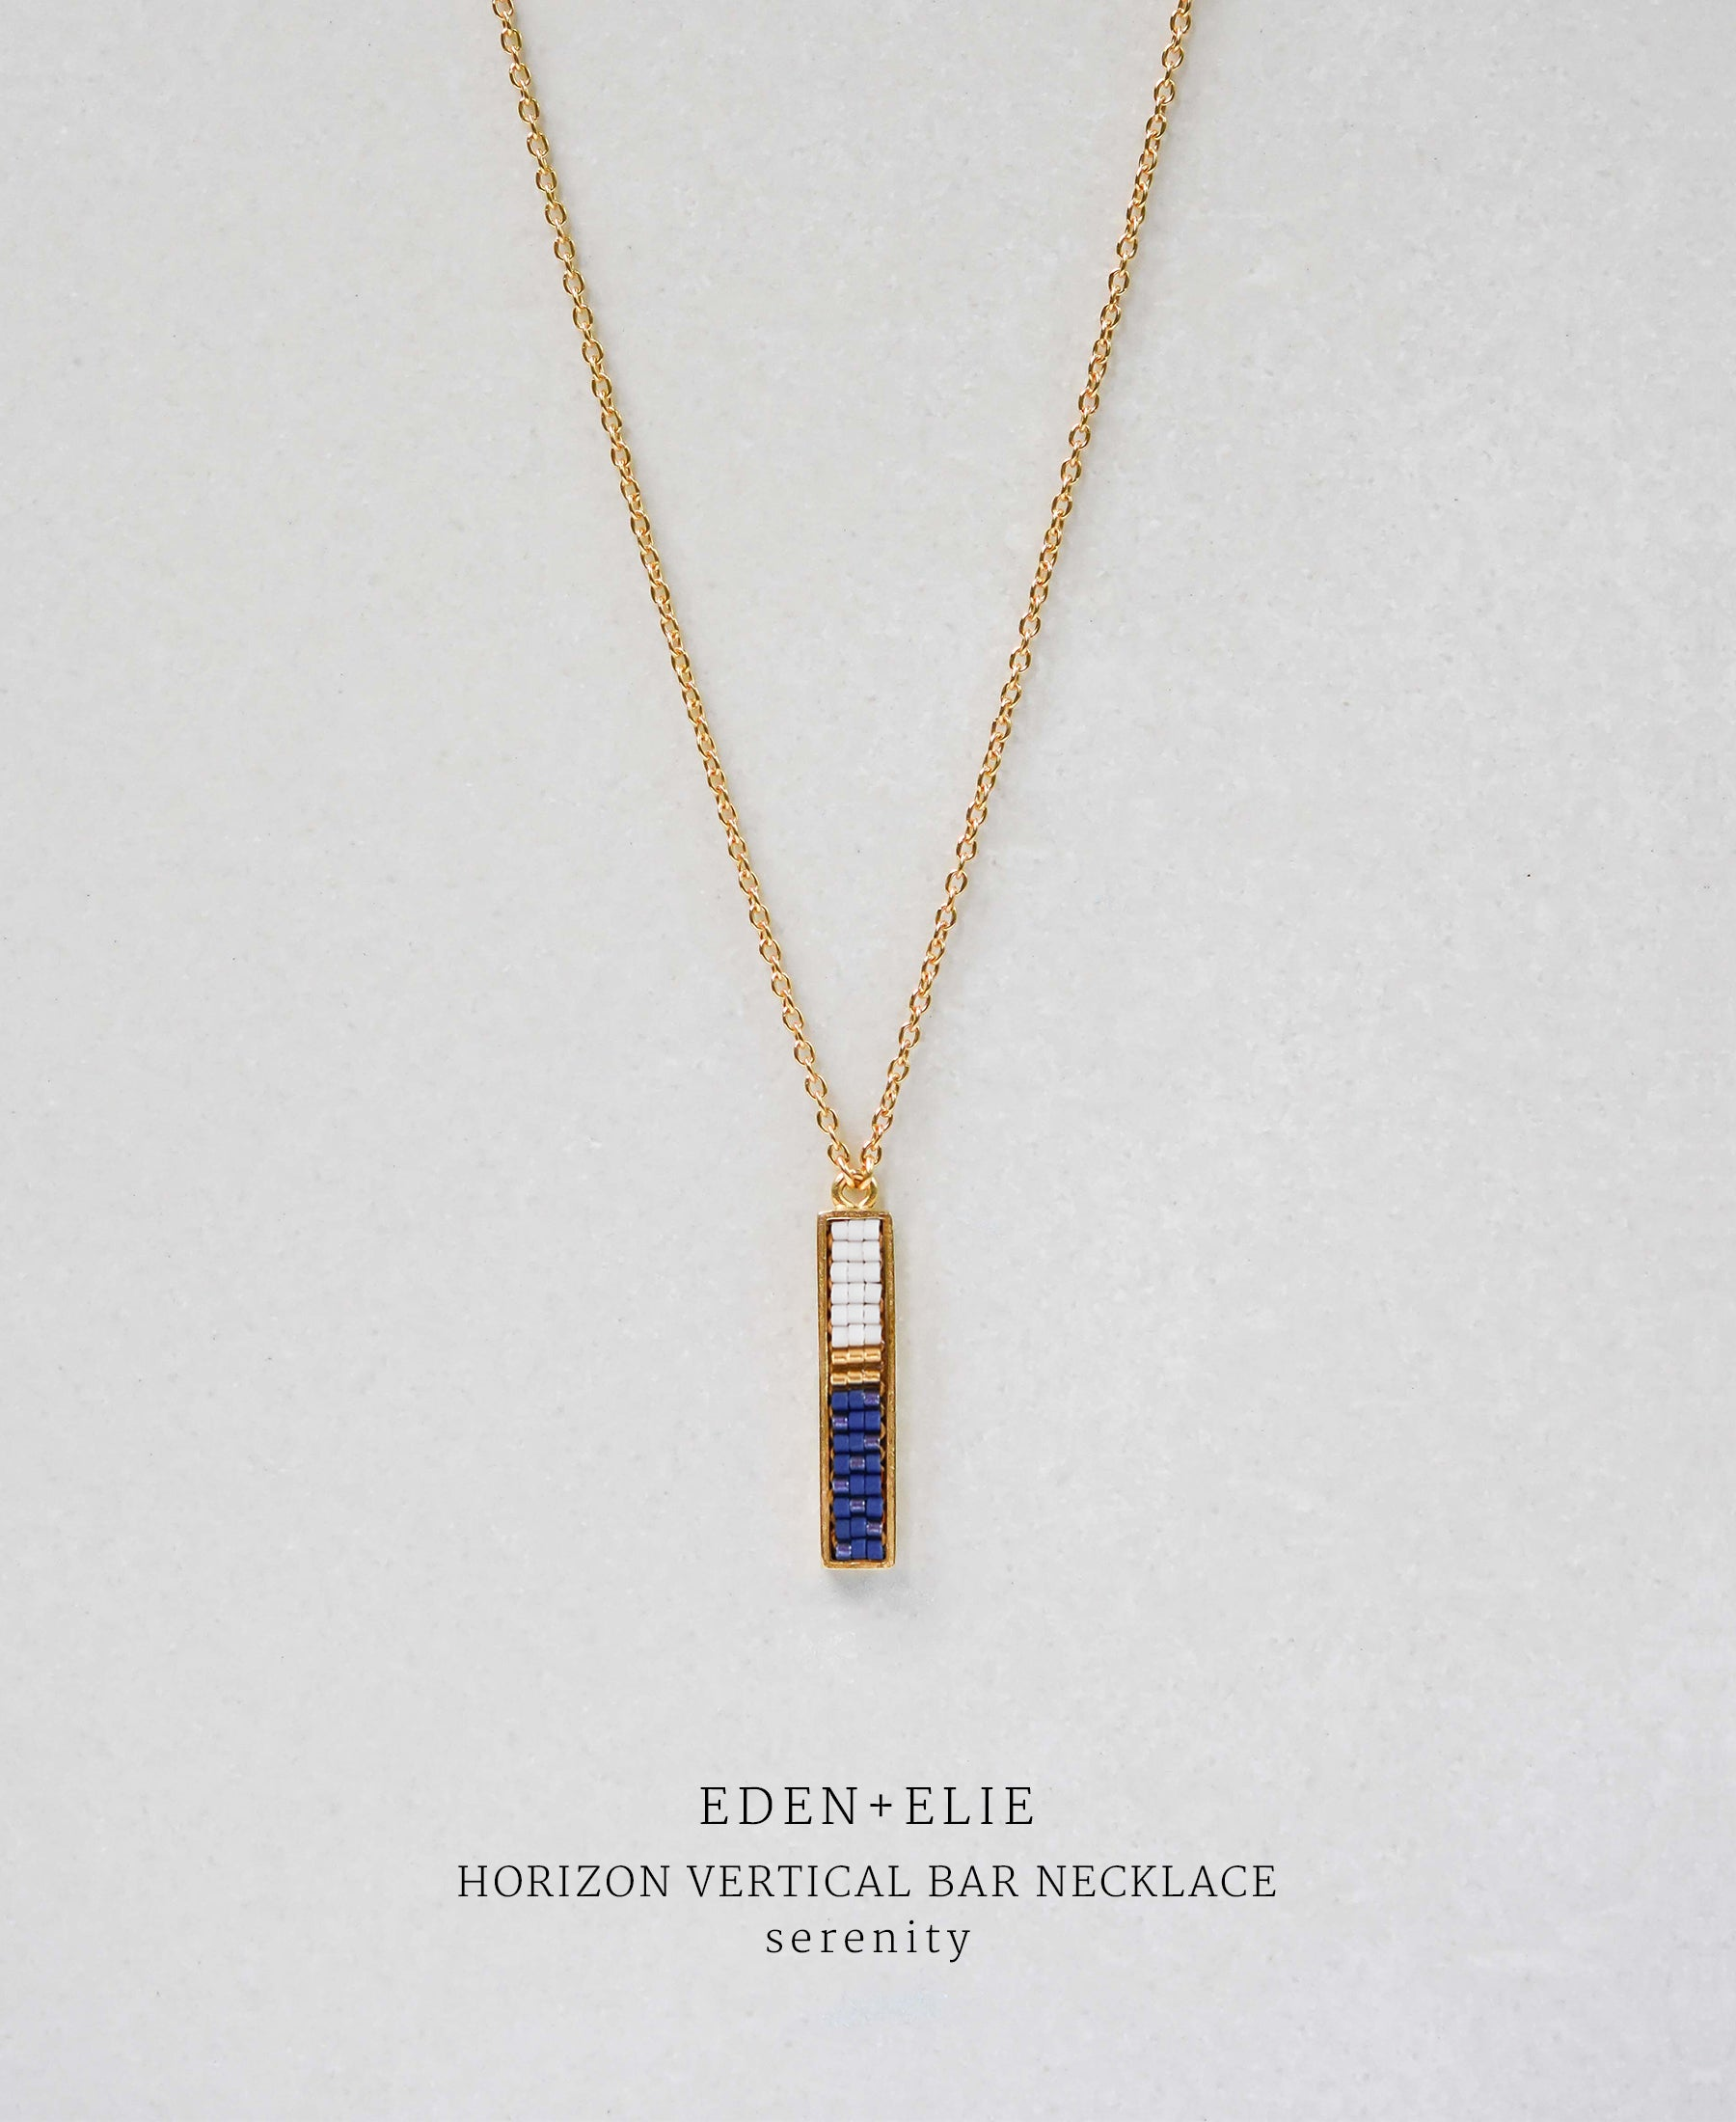 EDEN + ELIE Horizon Vertical bar necklace - serenity blue